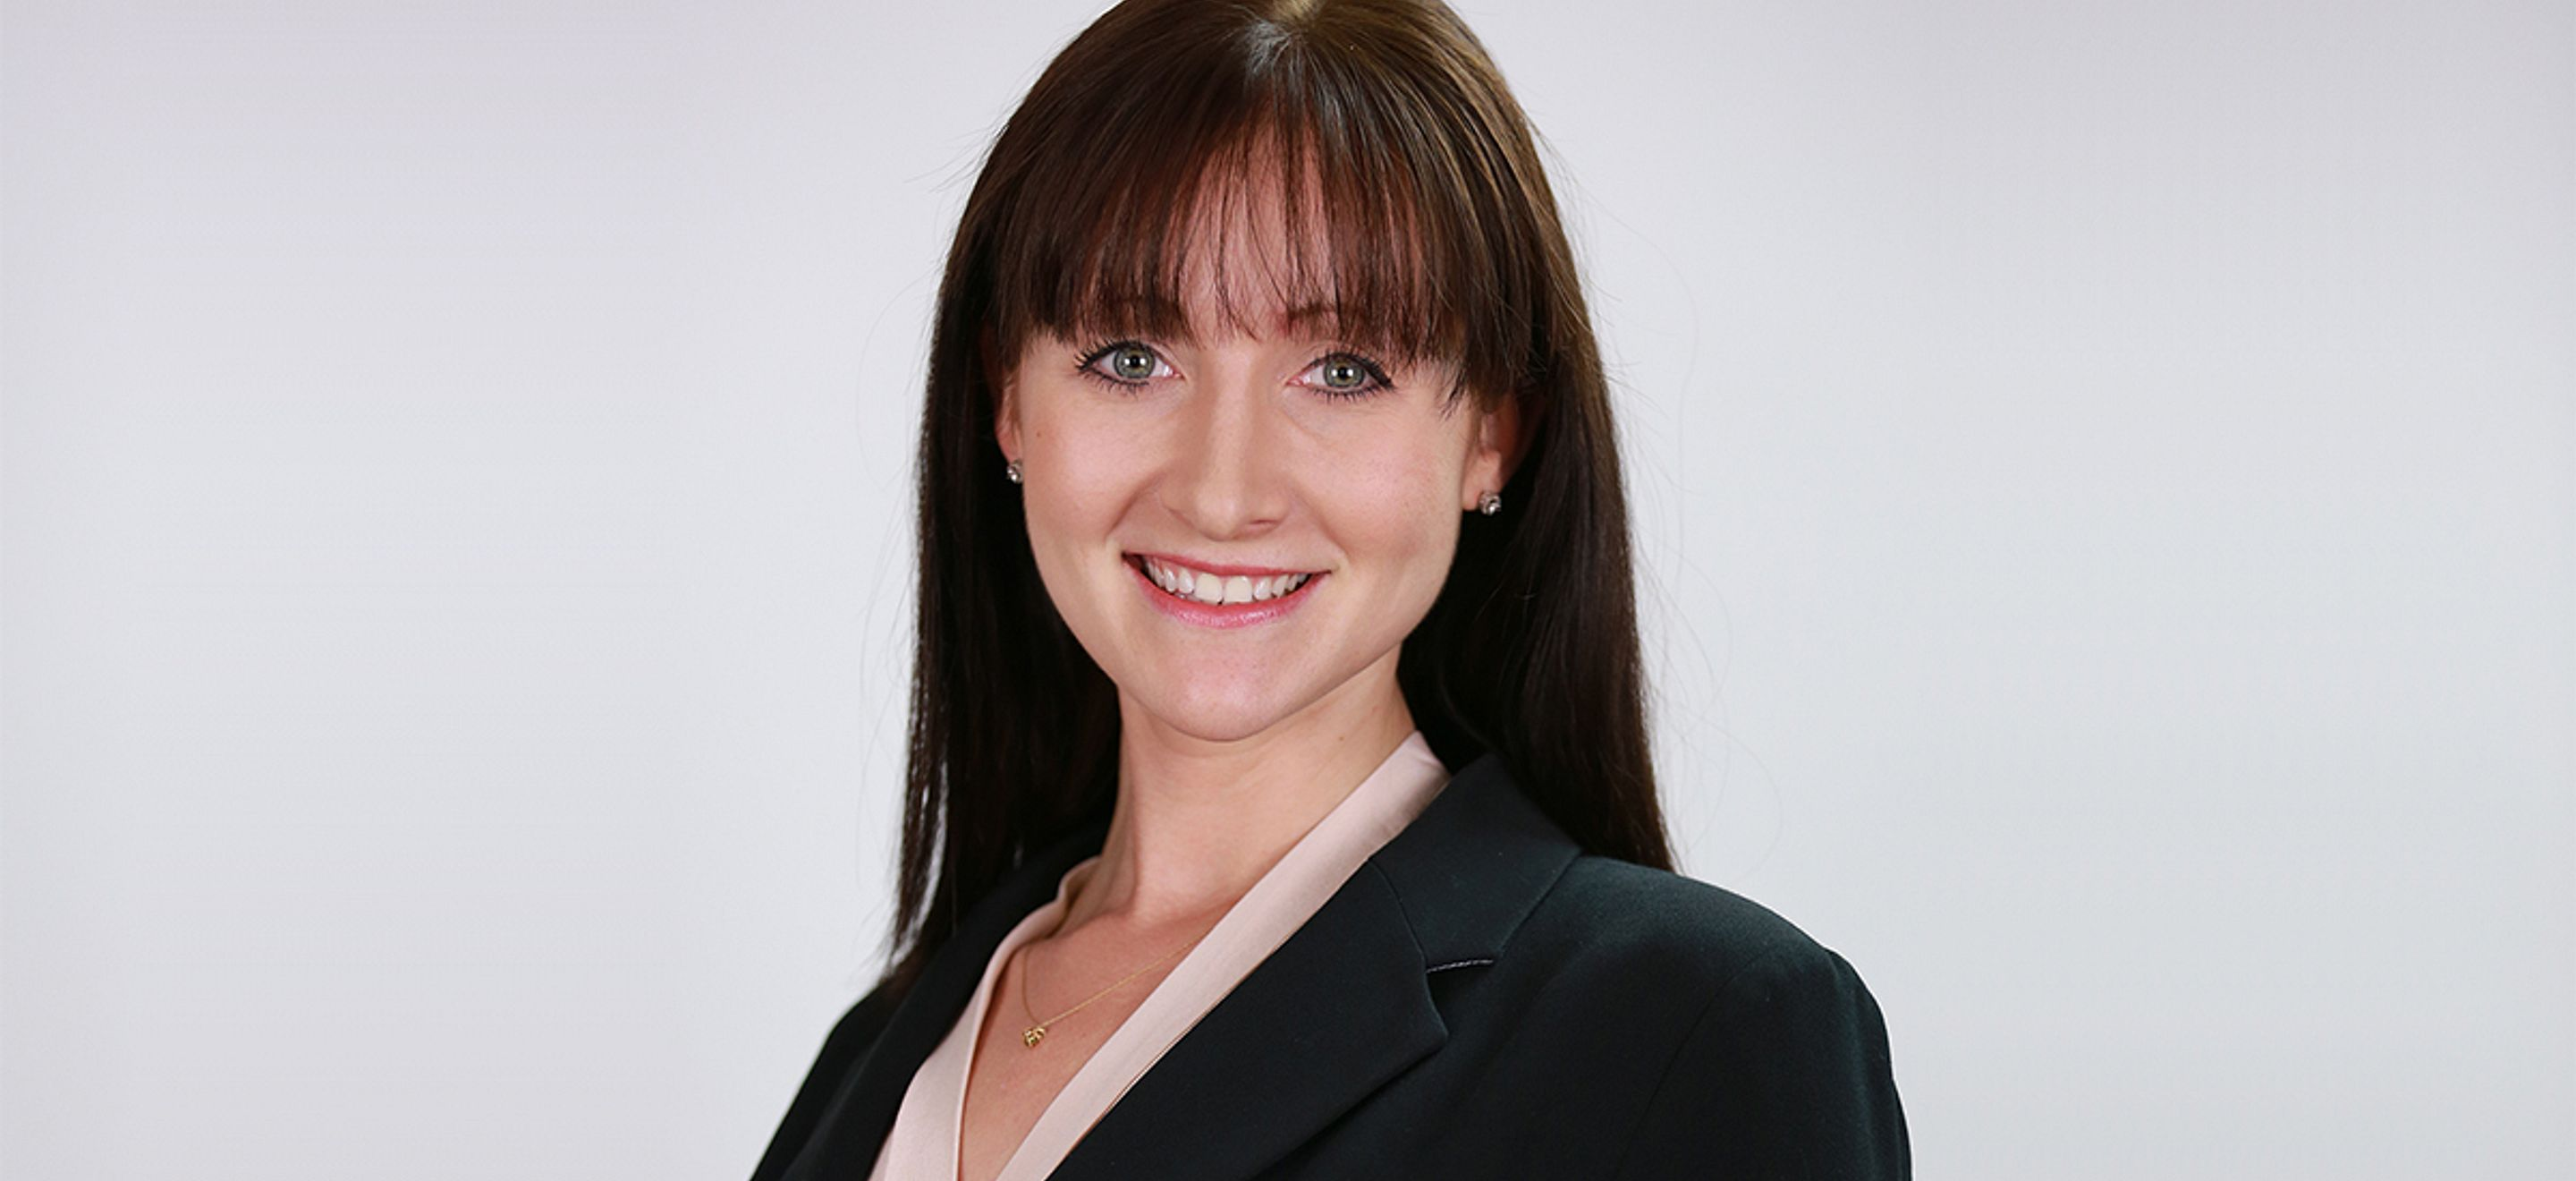 A headshot of IRAP alumna Yekaterina Reyzis. She has straight dark brown hair with bangs and smiles into the camera. She is wearing a light pink blouse with a black blazer and stands against a white background.